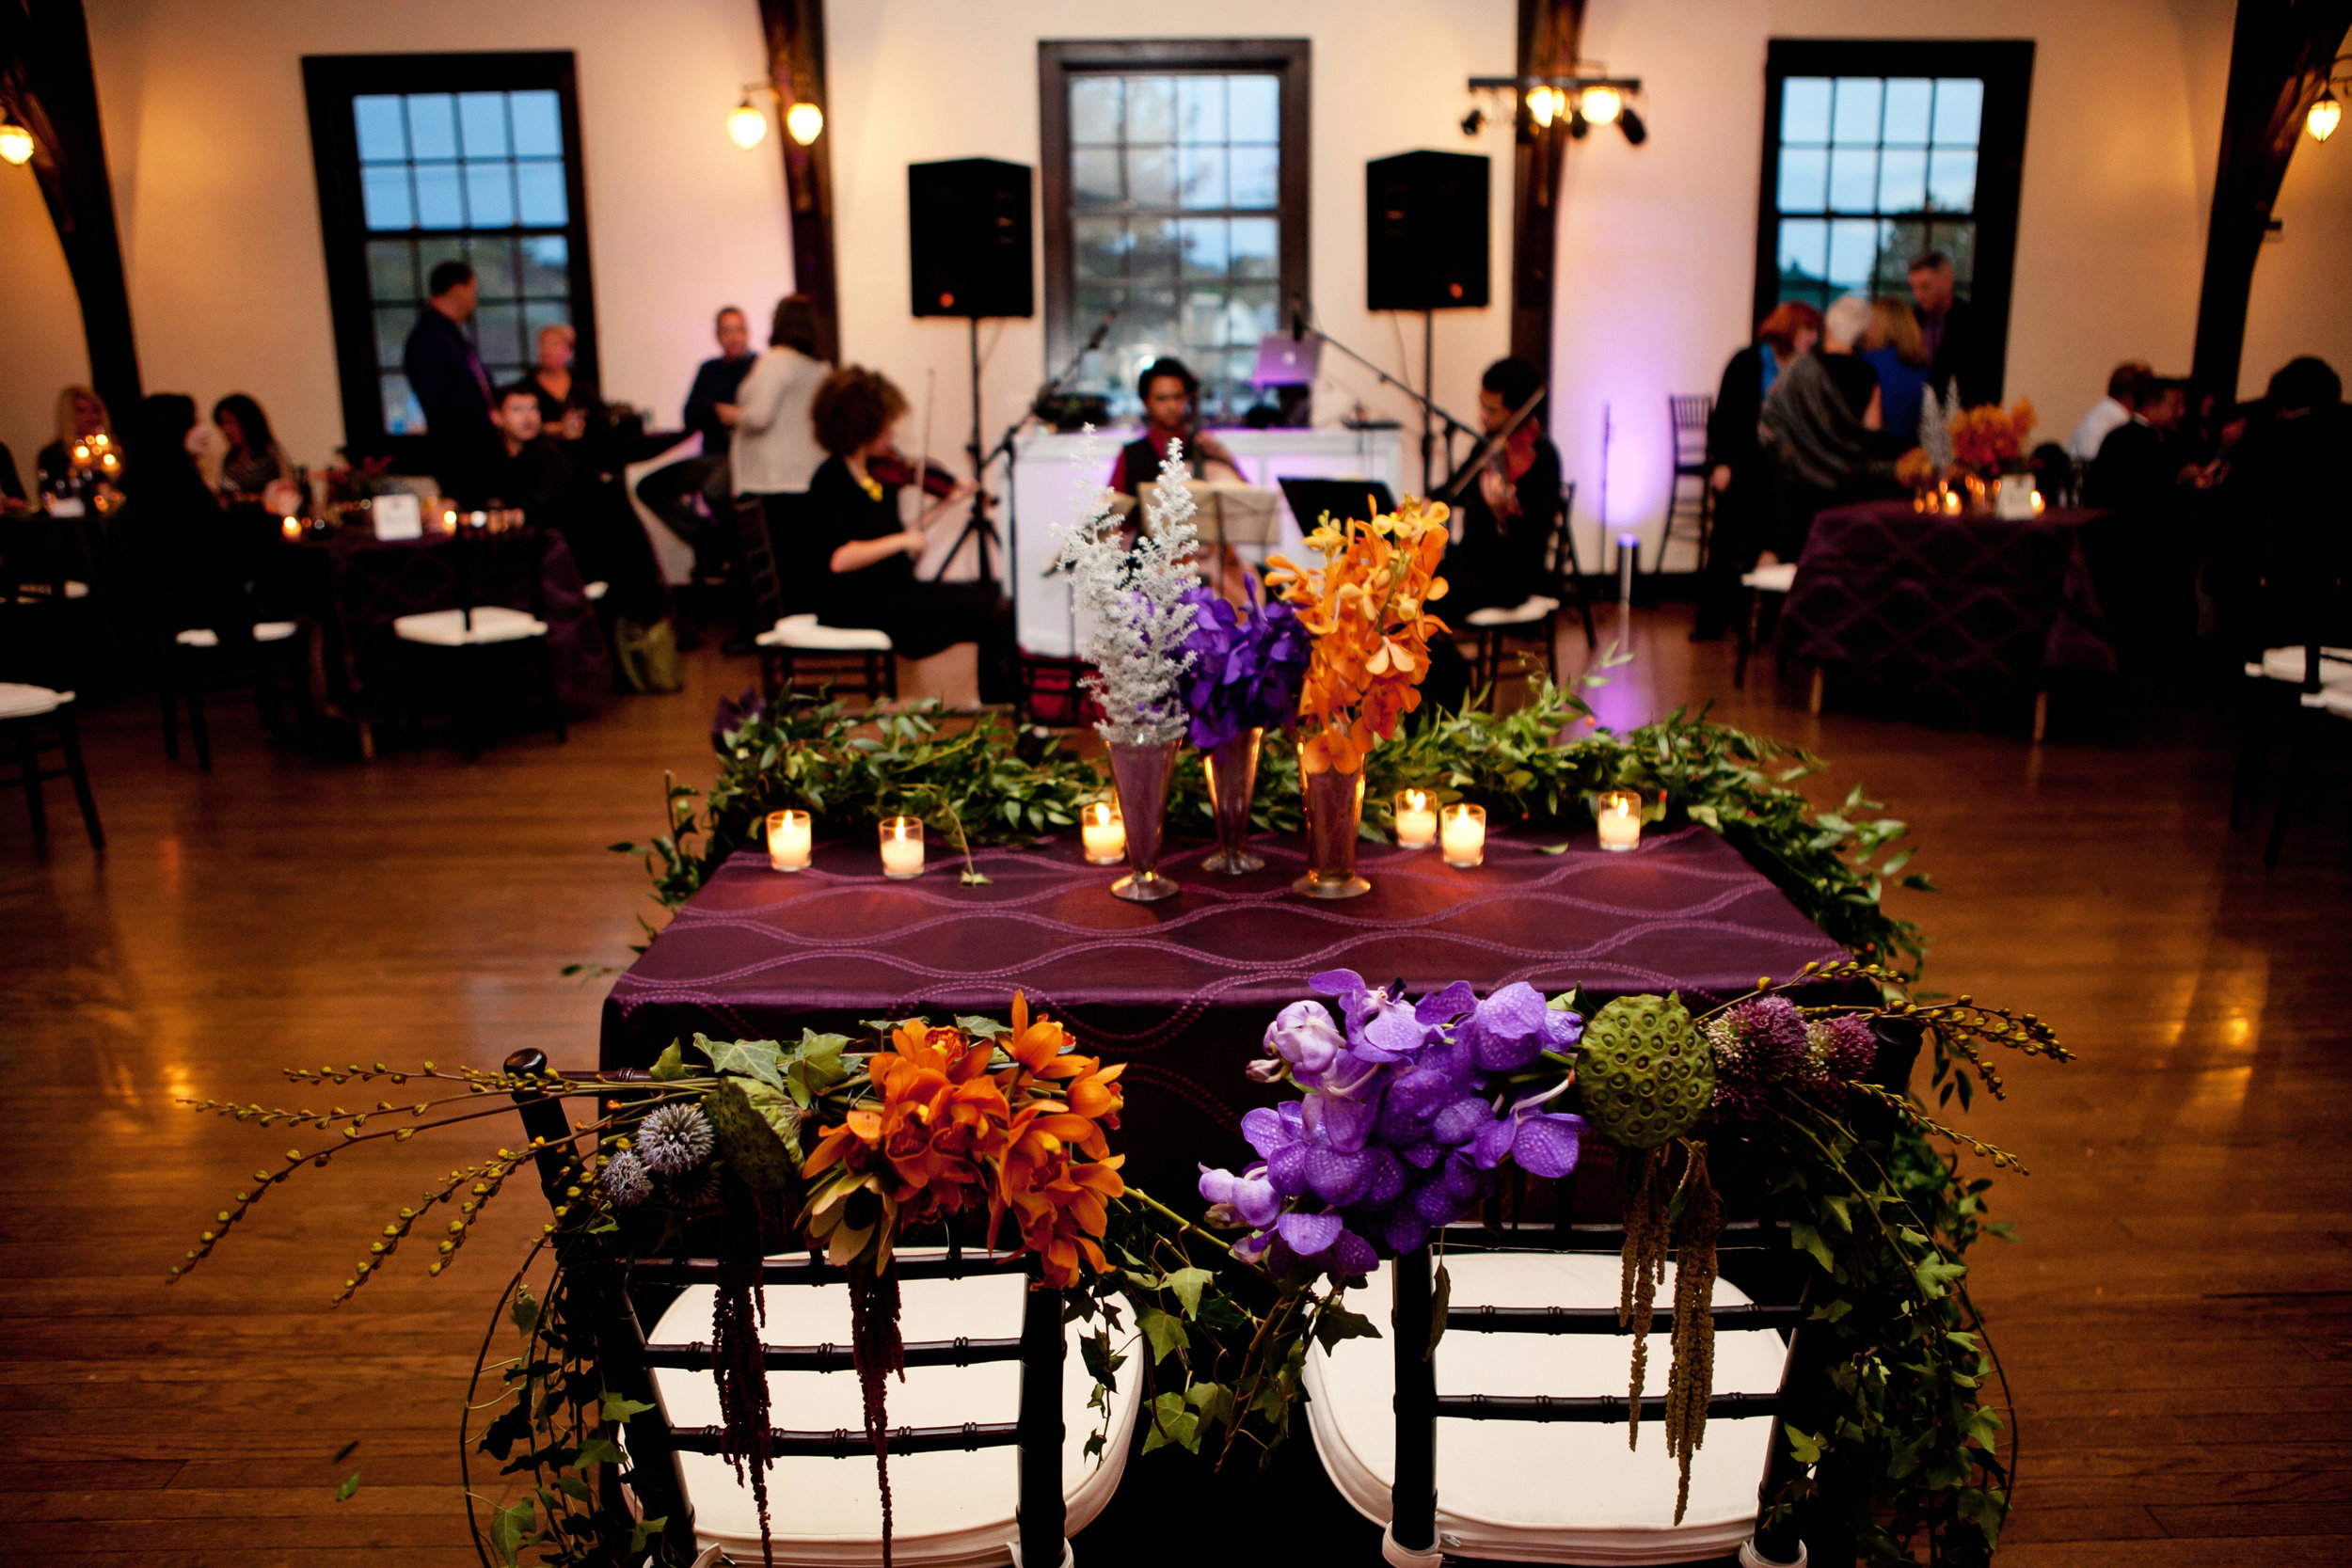 49  sweetheart table two brides sweetheart table sweetheart table decor purple and orange flowers at sweetheart table Life Design Events.jpg